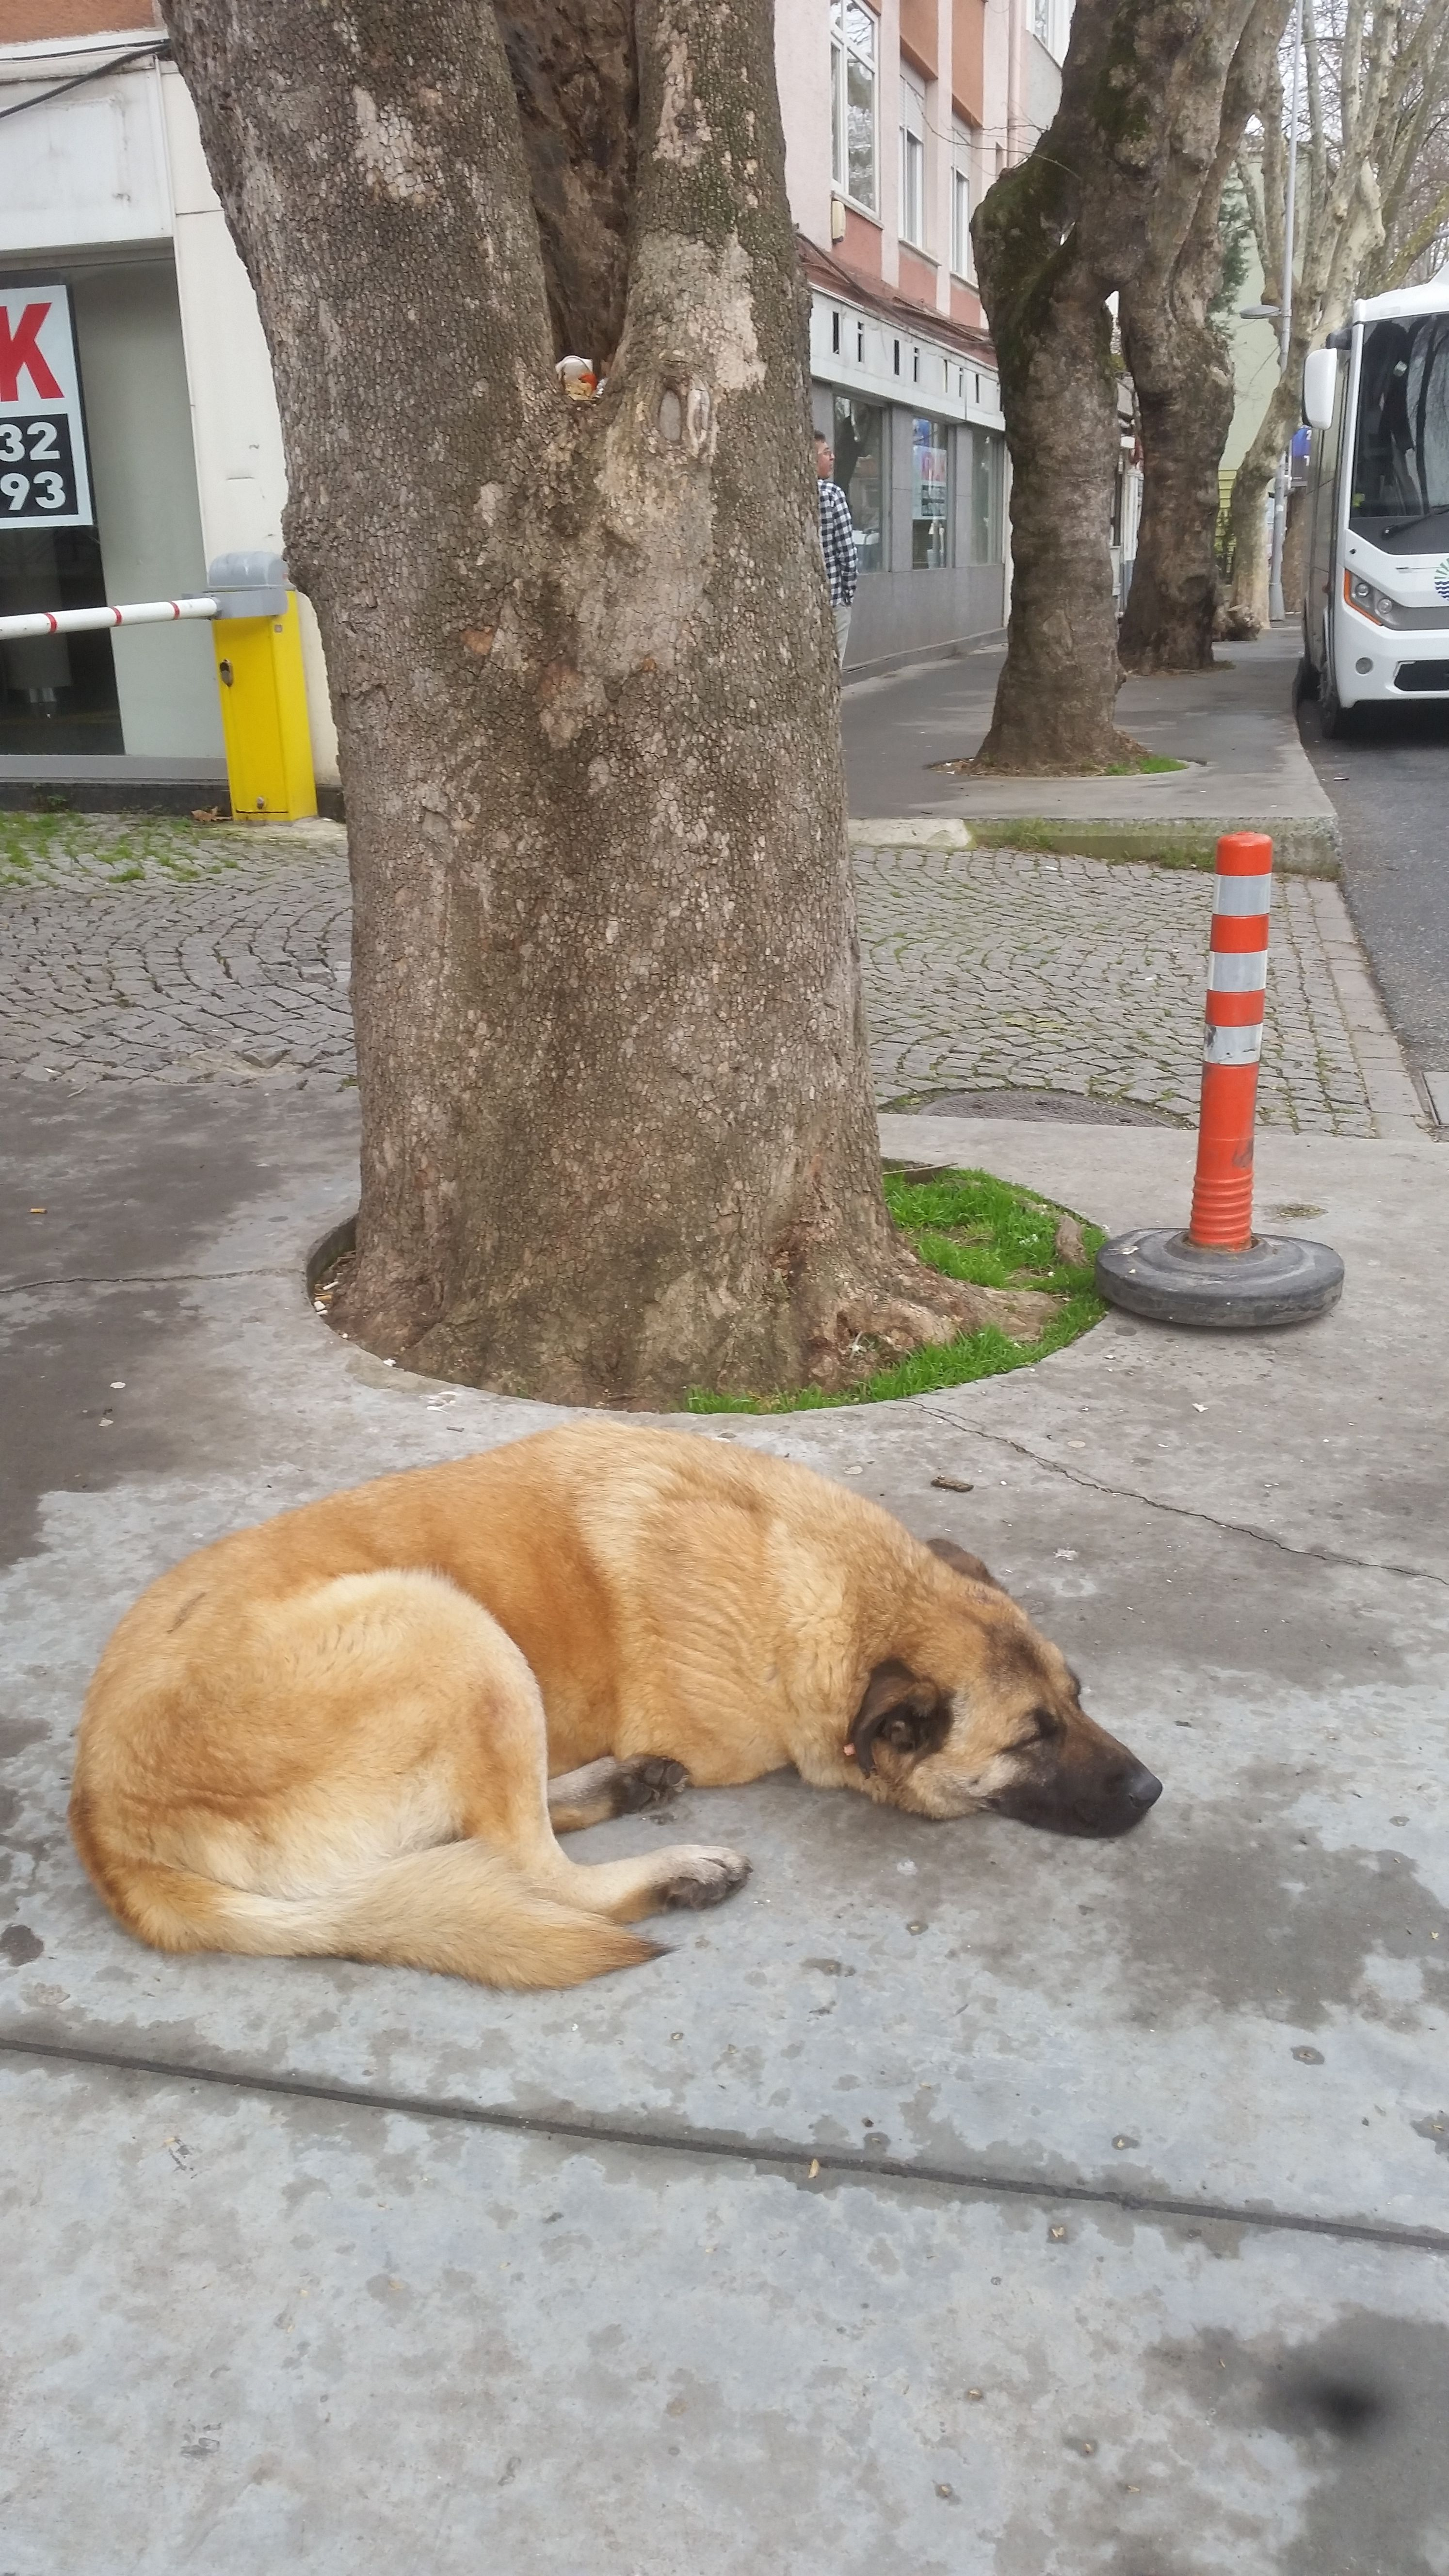 Strated Unhappy Straydogs Life Rights Respect Please Ca Castratedstraydogs Unhappystreetdogs Castratedstreetdogs